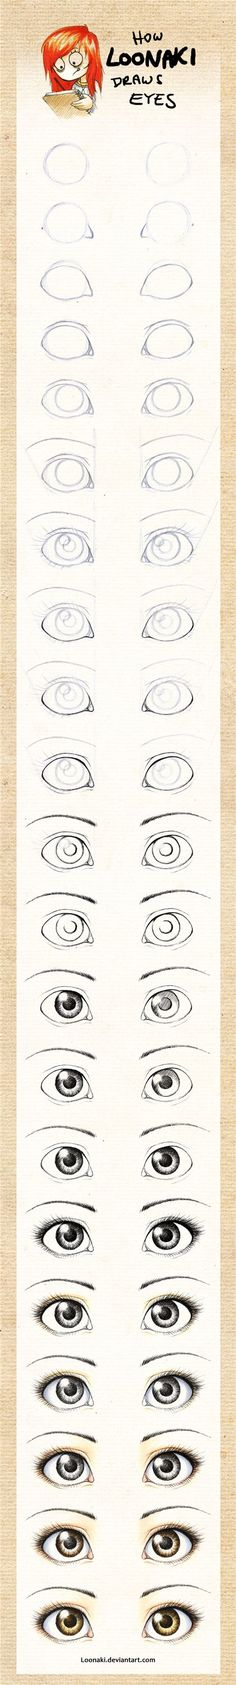 how to draw eyes, bigger and rounder (like disney princesses)